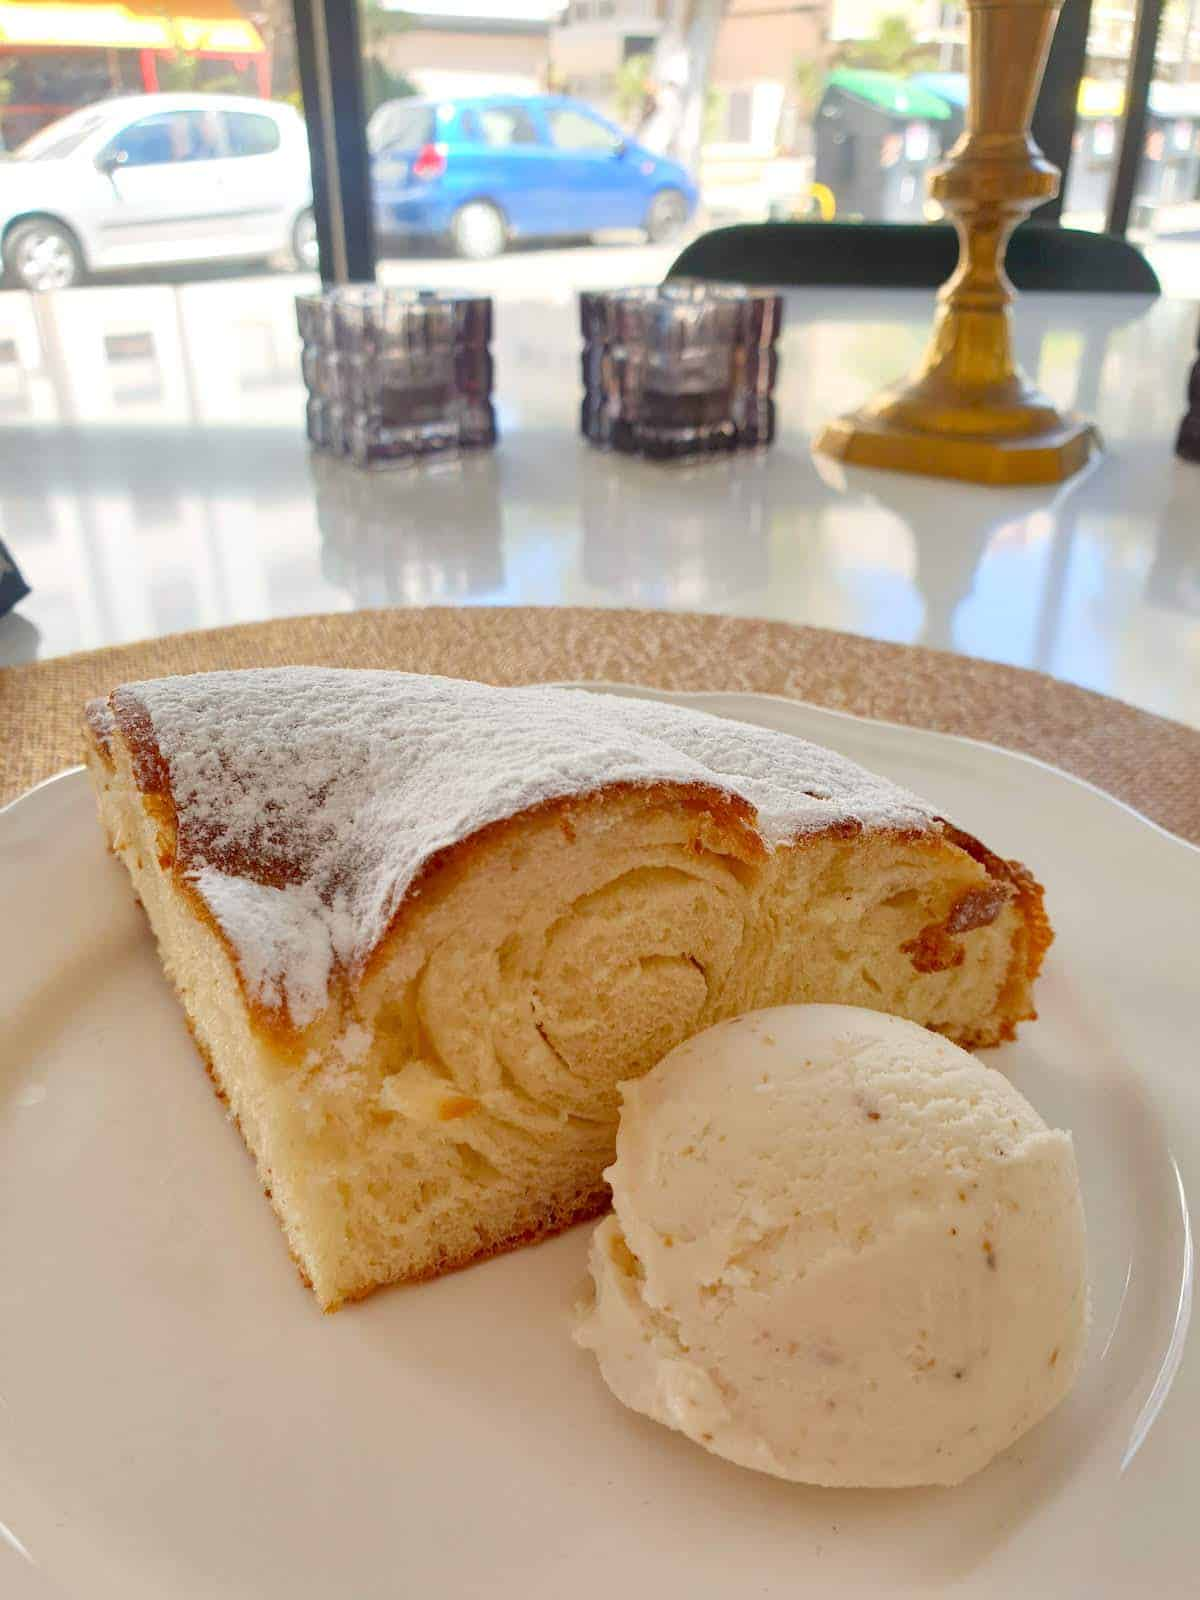 Pastry covered in powdered sugar on a white plate beside a scoop of vanilla ice cream.